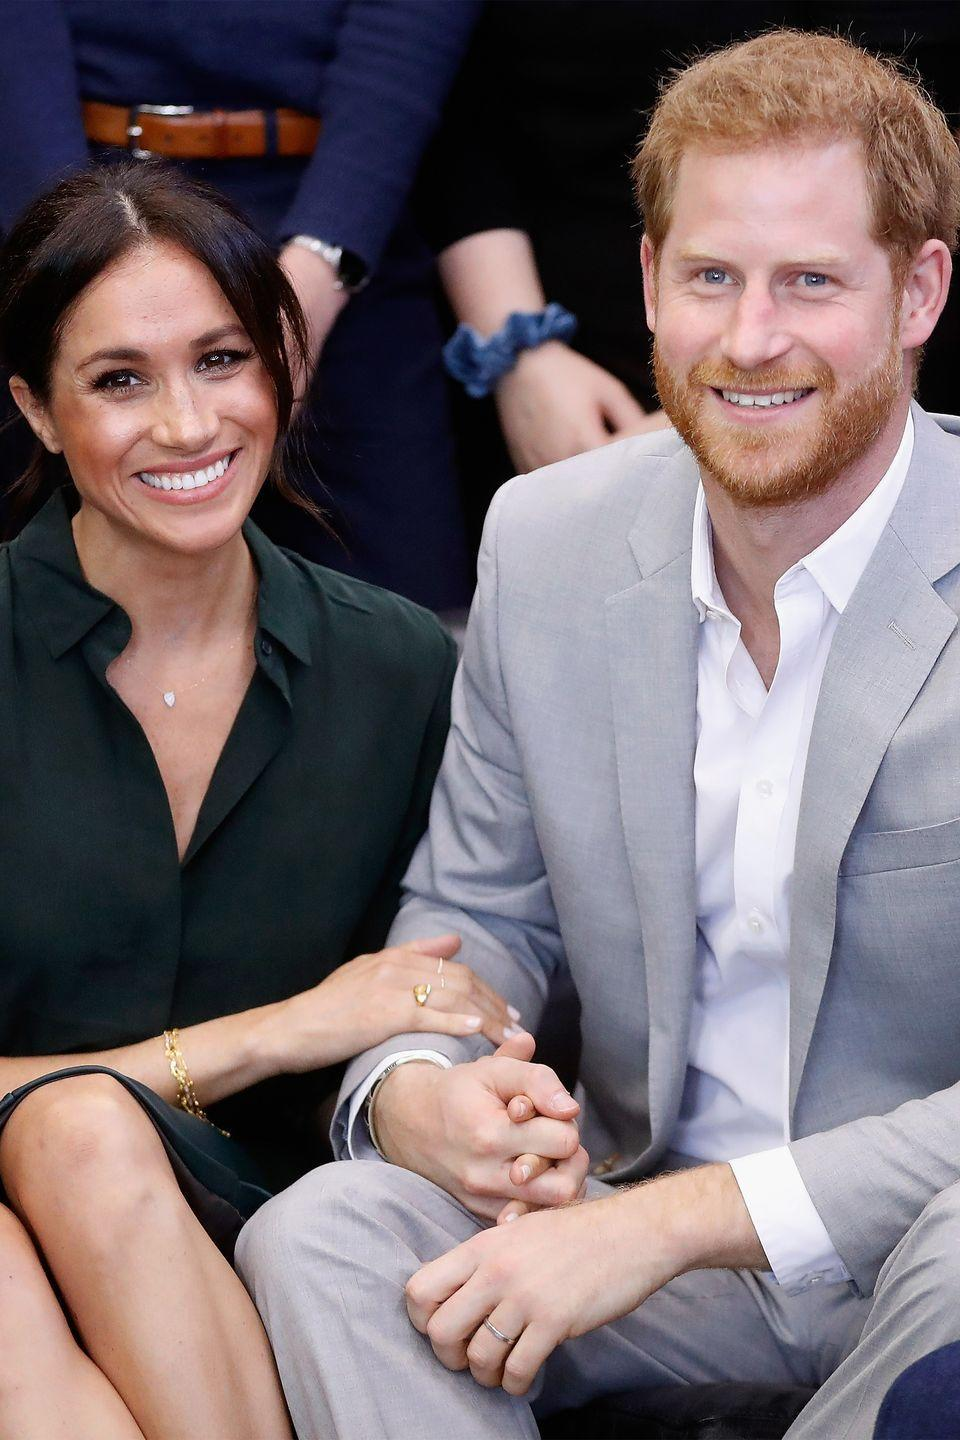 "<p>In a royal romance that took the world by storm, Meghan Markle and Prince Harry first <a href=""https://www.harpersbazaar.com/celebrity/latest/a12466610/prince-harry-meghan-markle-first-joint-appearance/"" rel=""nofollow noopener"" target=""_blank"" data-ylk=""slk:went public"" class=""link rapid-noclick-resp"">went public</a> with their relationship at the 2017 Invictus Games. The duo then <a href=""https://www.harpersbazaar.com/celebrity/latest/a13931895/prince-harry-meghan-markle-engagement-photos/"" rel=""nofollow noopener"" target=""_blank"" data-ylk=""slk:announced their engagement"" class=""link rapid-noclick-resp"">announced their engagement</a> in November of that year, and <a href=""https://www.harpersbazaar.com/celebrity/latest/g20839844/best-prince-harry-meghan-markle-royal-wedding-photos-recap/"" rel=""nofollow noopener"" target=""_blank"" data-ylk=""slk:were married May 2018"" class=""link rapid-noclick-resp"">were married May 2018</a> in a wedding watched by millions. Upon embarking on their <a href=""https://www.harpersbazaar.com/celebrity/latest/a24566405/meghan-markle-prince-harry-australia-tour-behind-the-scenes/"" rel=""nofollow noopener"" target=""_blank"" data-ylk=""slk:first major royal tour"" class=""link rapid-noclick-resp"">first major royal tour</a> together across Australia, Fiji, Tonga, and New Zealand, it was <a href=""https://www.harpersbazaar.com/celebrity/latest/a23769903/meghan-markle-is-pregnant-royal-expecting-baby-prince-harry-announcement/"" rel=""nofollow noopener"" target=""_blank"" data-ylk=""slk:announced"" class=""link rapid-noclick-resp"">announced</a> that couple was expecting their first child. The royal bundle of joy <a href=""https://www.harpersbazaar.com/celebrity/latest/a25887452/meghan-markle-due-date-sex-of-baby/"" rel=""nofollow noopener"" target=""_blank"" data-ylk=""slk:is due"" class=""link rapid-noclick-resp"">is due</a> Spring 2019. </p>"